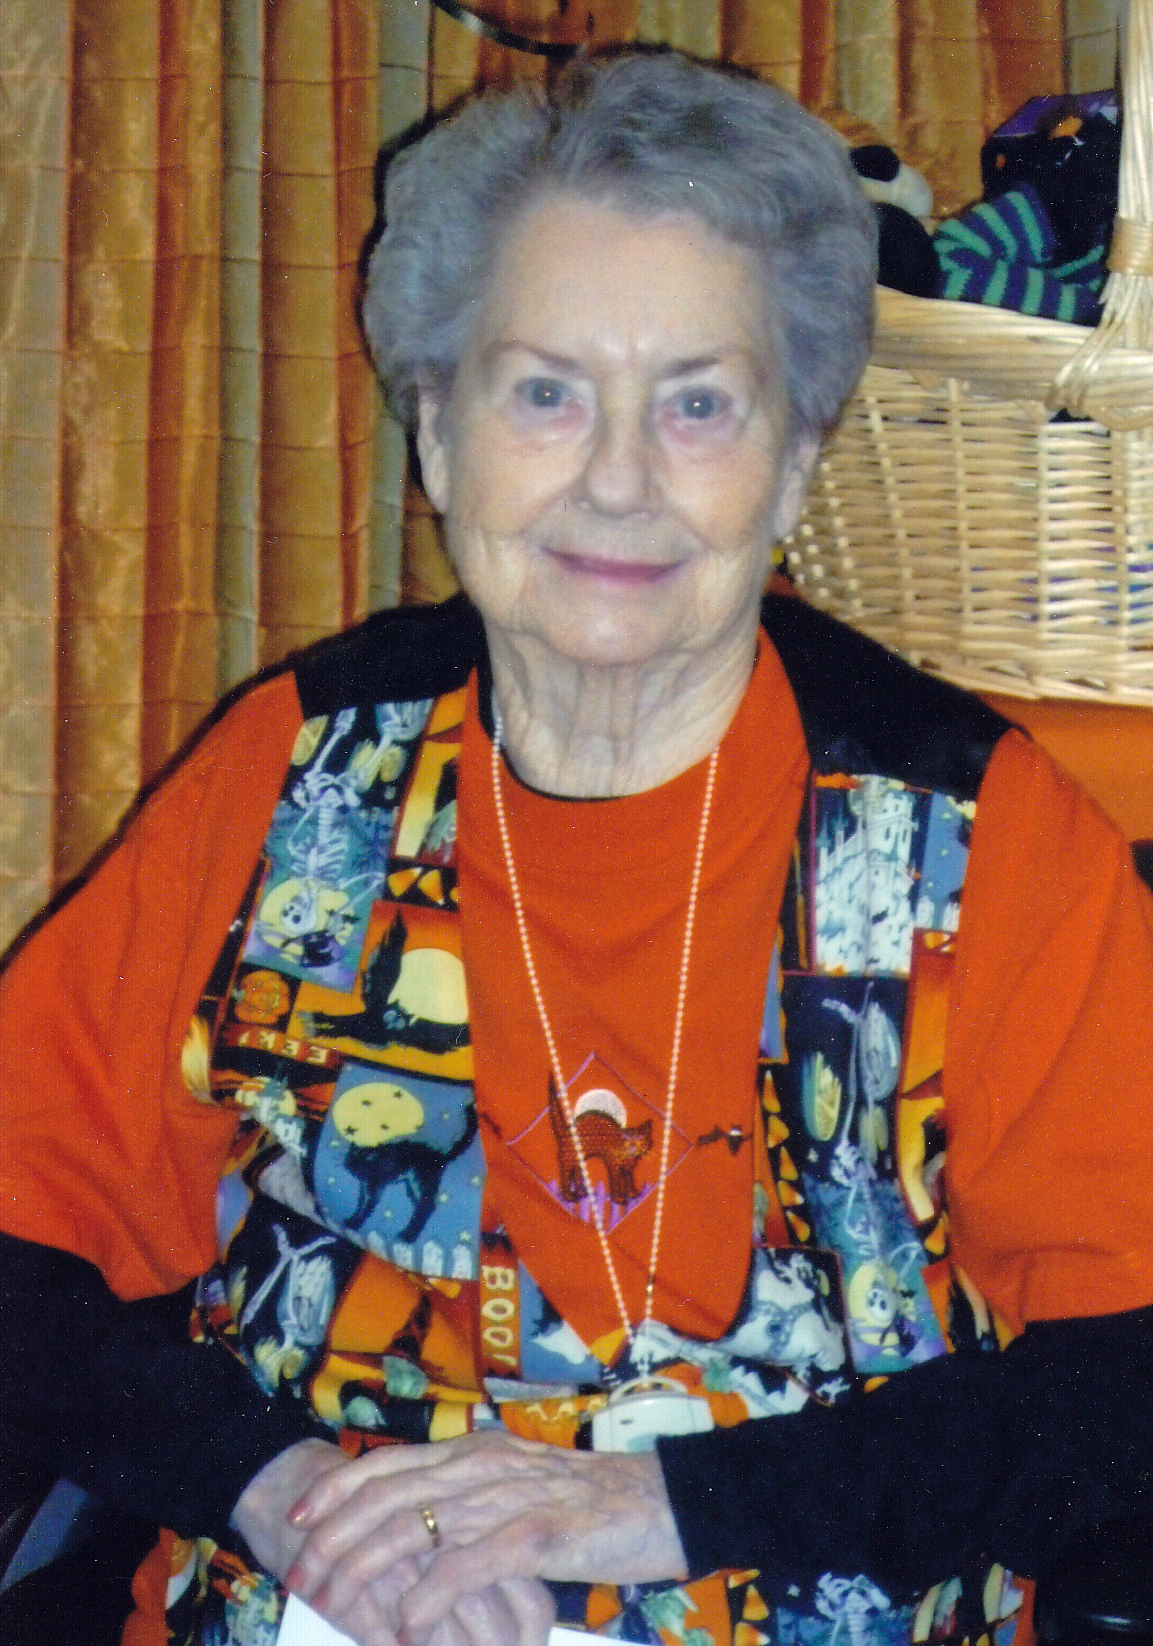 patty was known to all as a lively generous and multi talented spirit she passed on peacefully at the age of 93 making her final journey on november 2nd